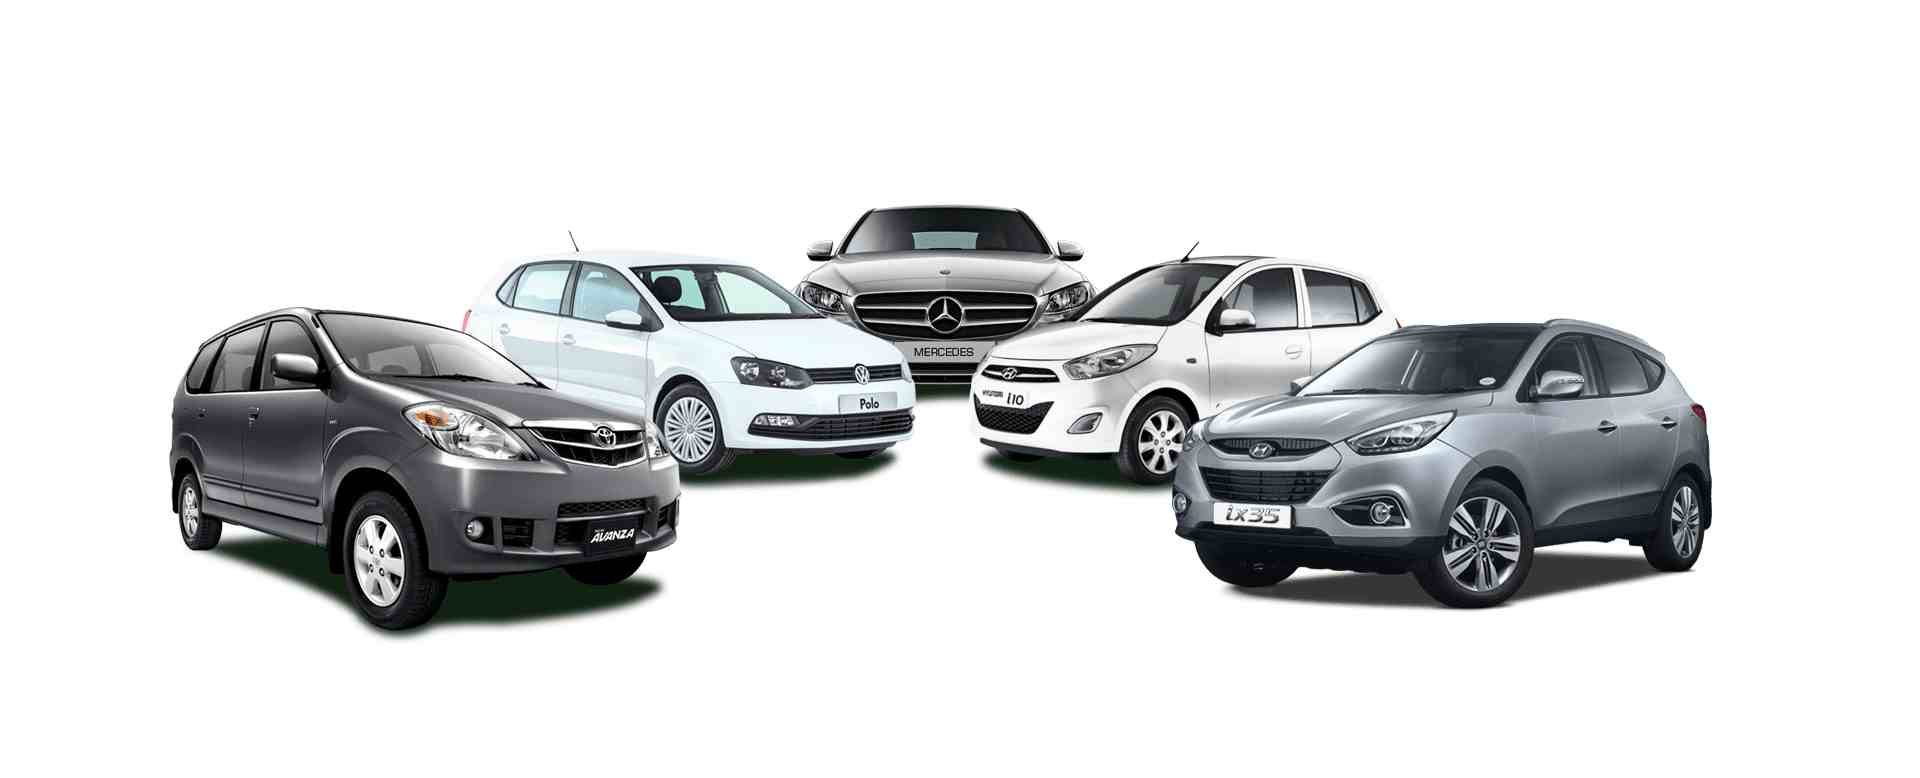 Rent the Best Vehicles for the Trip Convenience